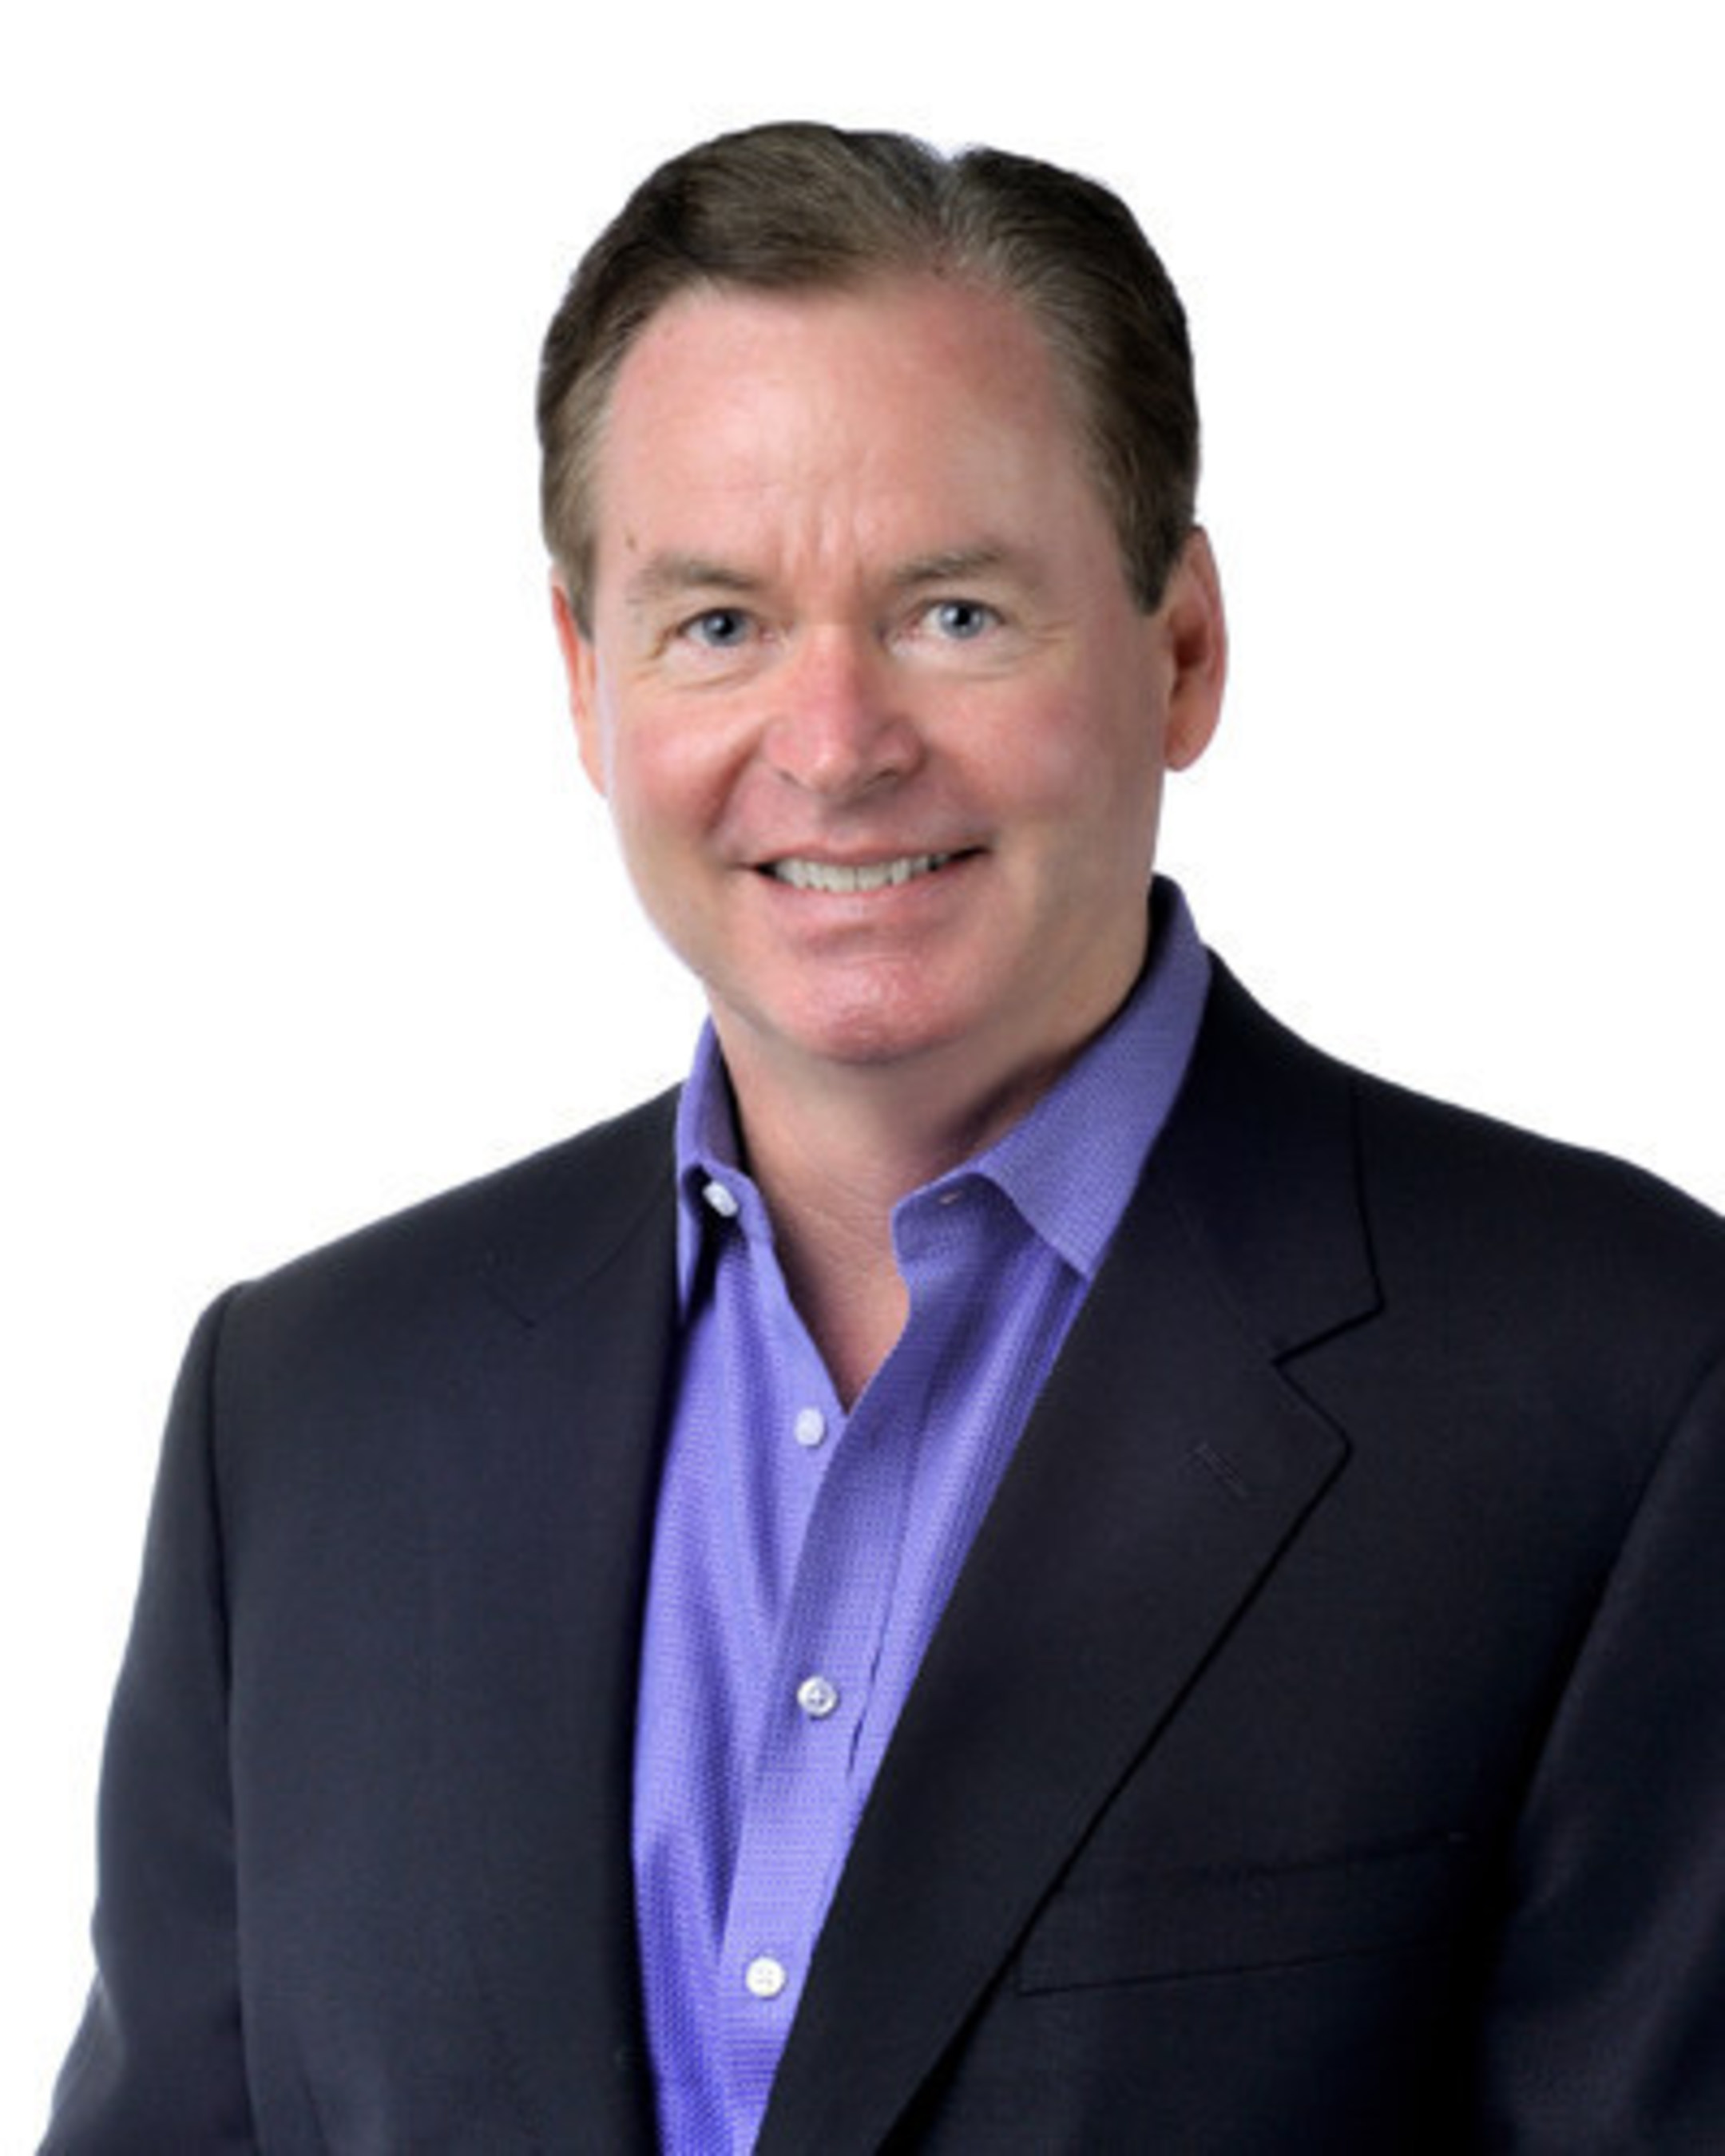 Technology executive Patrick D. Quirk joins B2B margin and profit optimization firm, Vendavo, after the highest bookings year in company history.